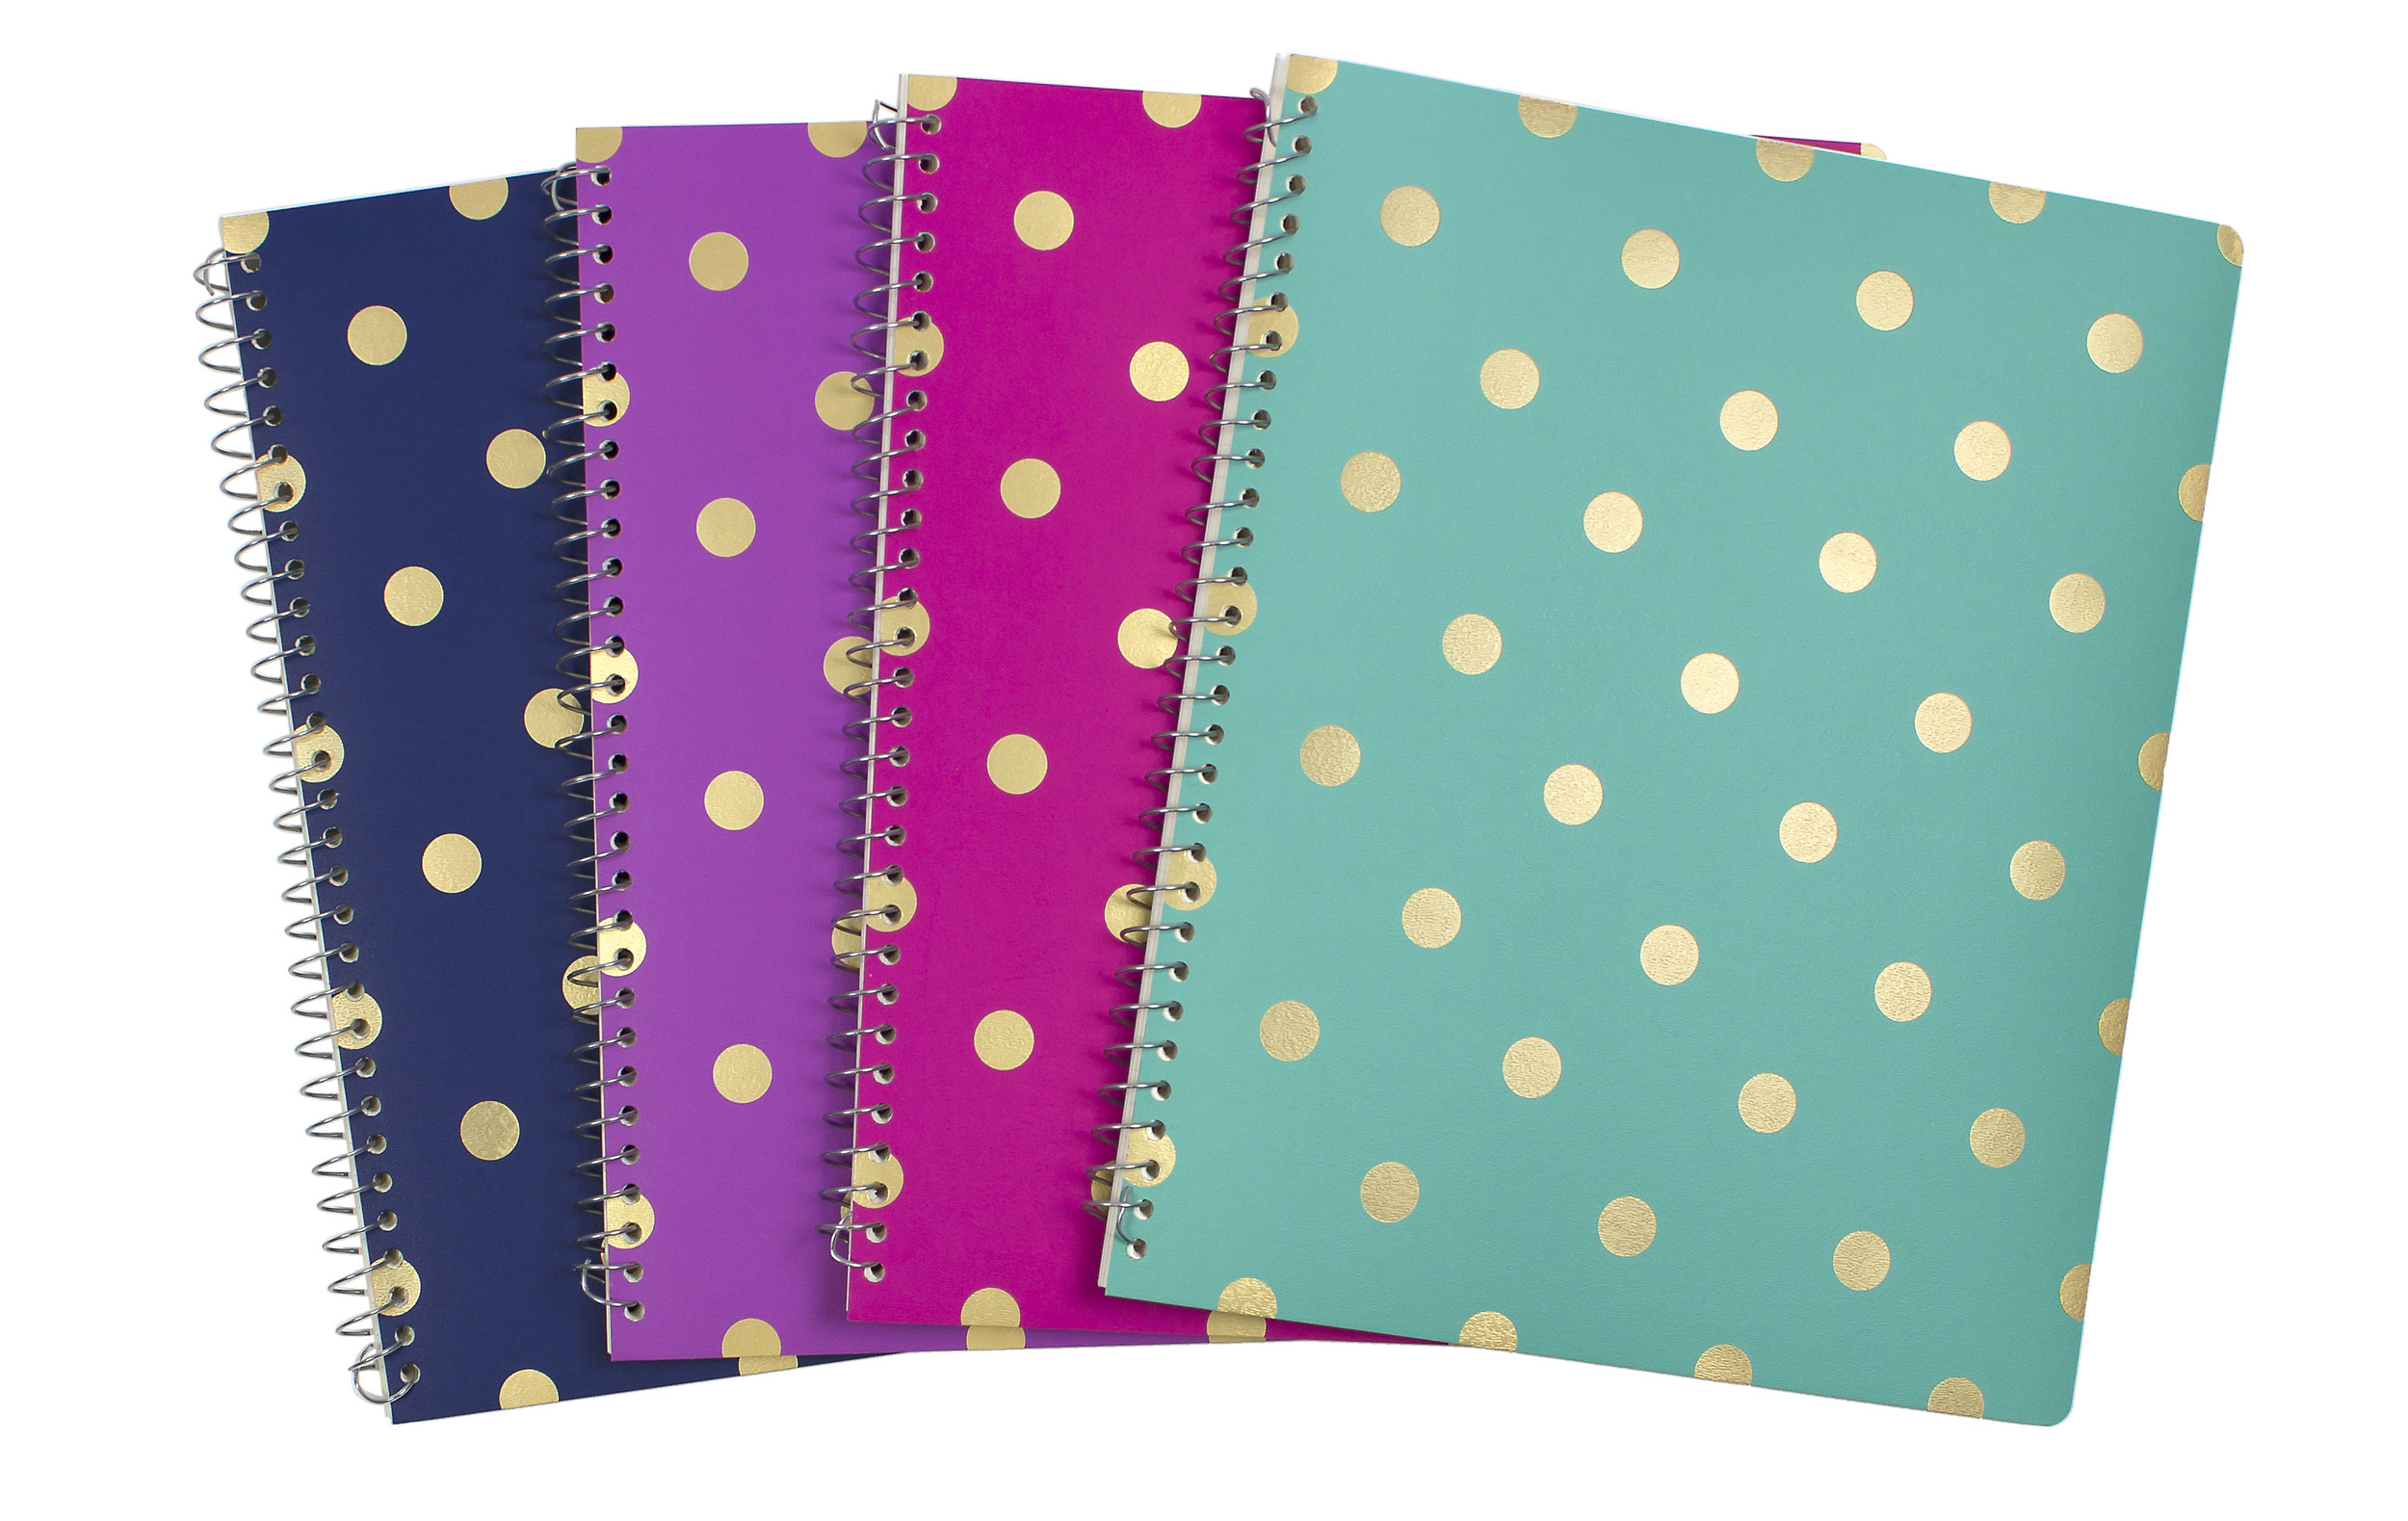 1-Subject Notebook Gold Metallic Dots // Greenroom, available at Target.